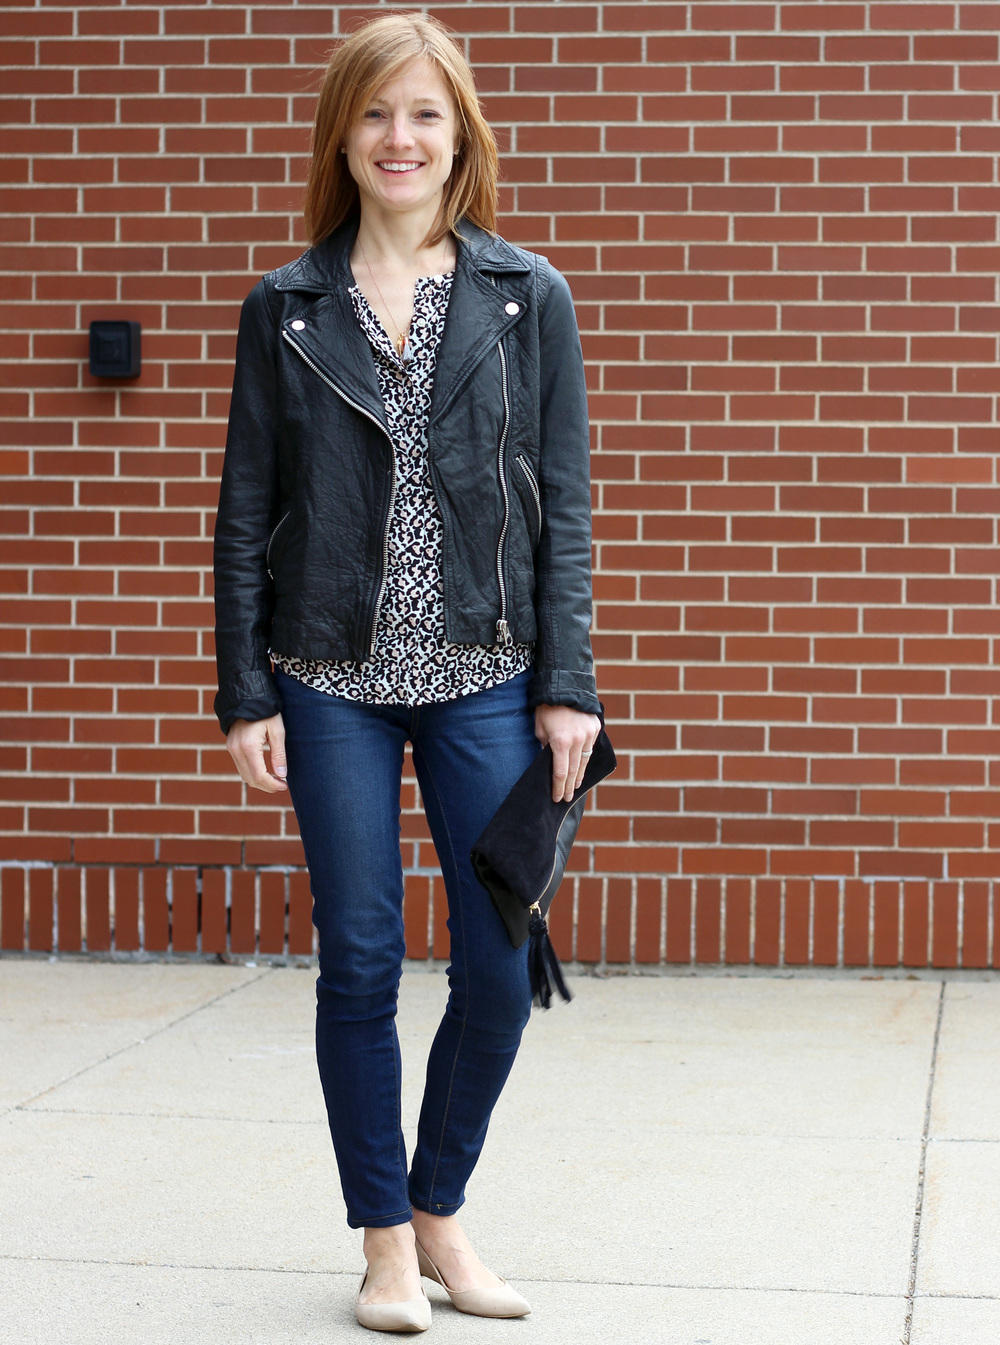 Anne of In Residence: Leather jacket, leopard-print blouse, skinny jeans, tan flats, black clutch